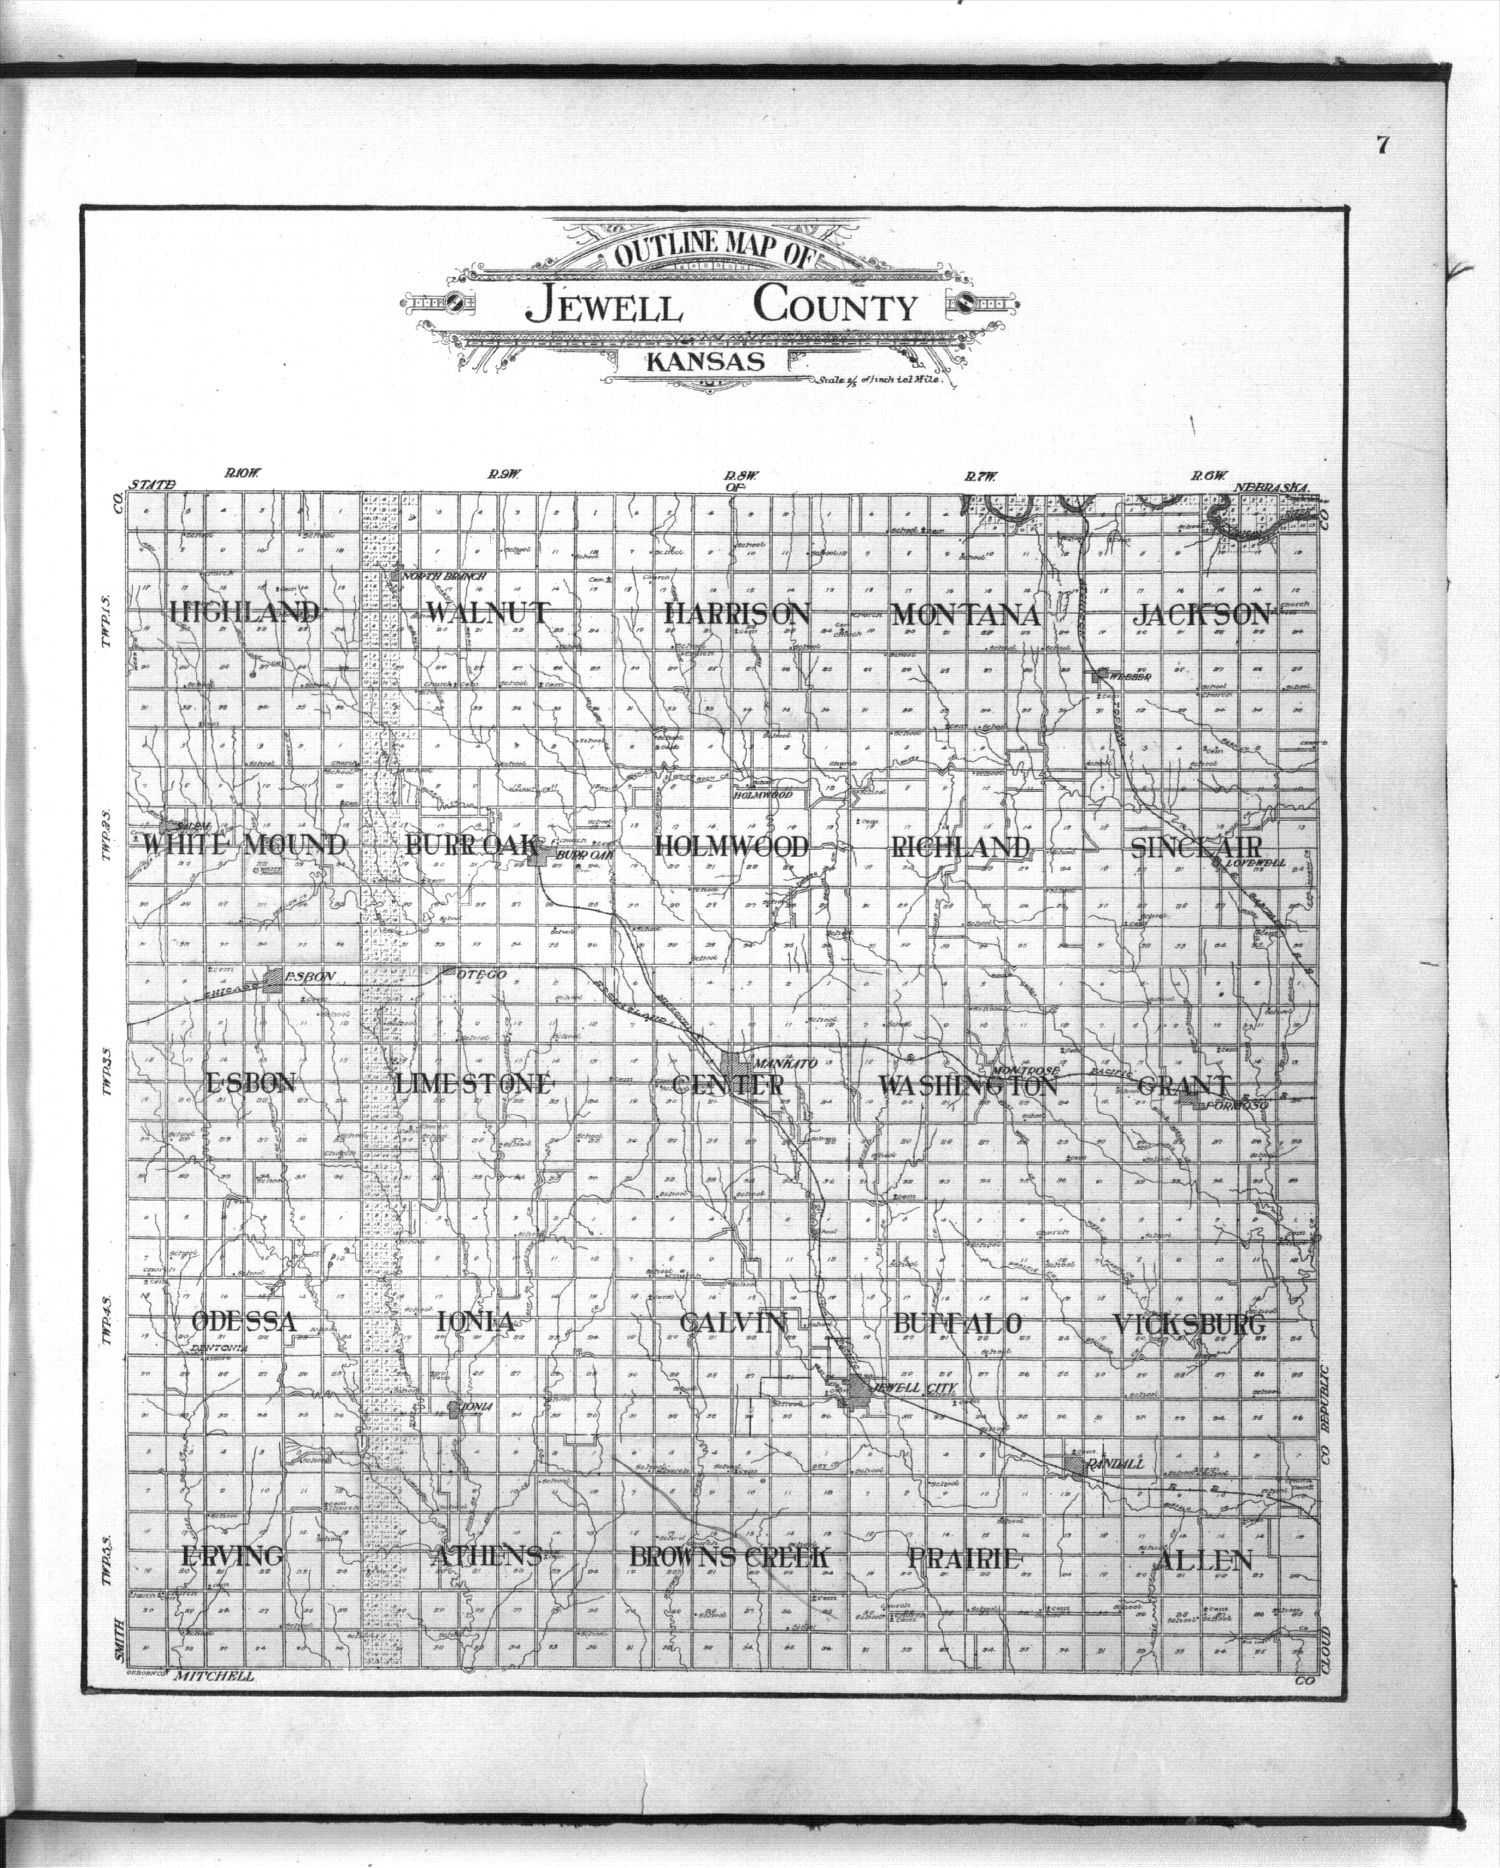 Standard atlas of Jewell County, Kansas - 7